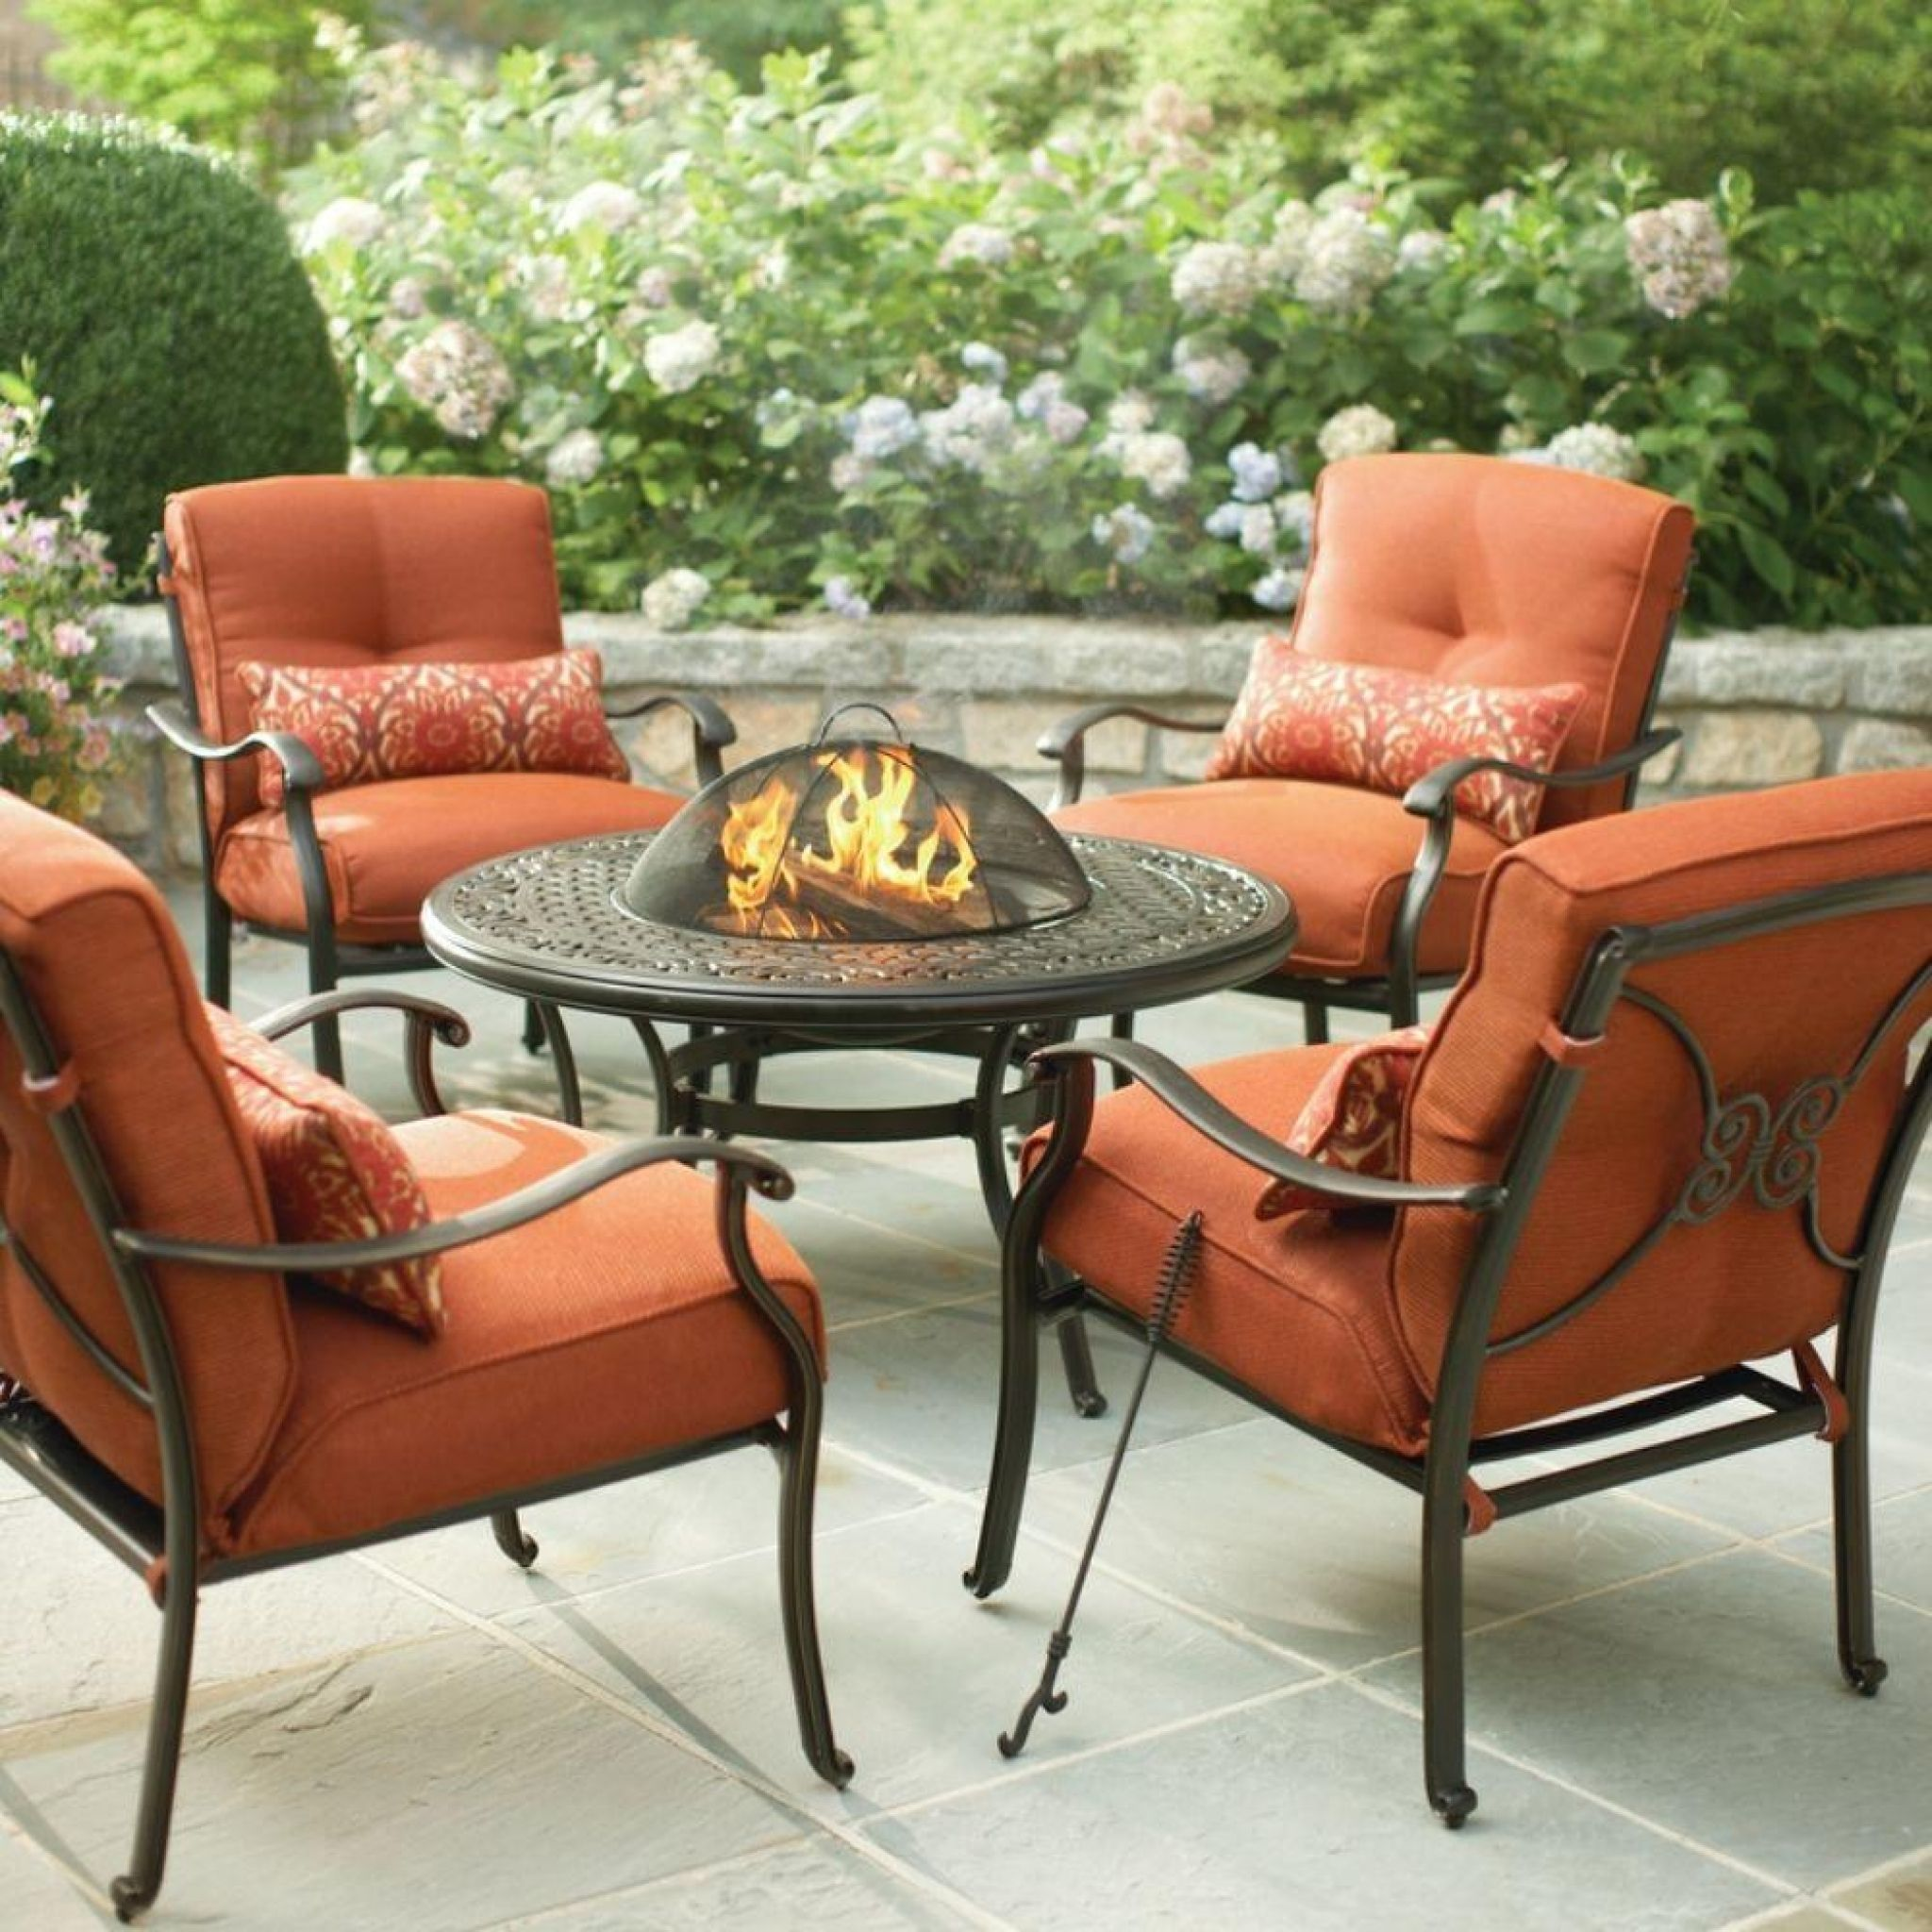 Outdoor furniture at home depot best interior paint brand check